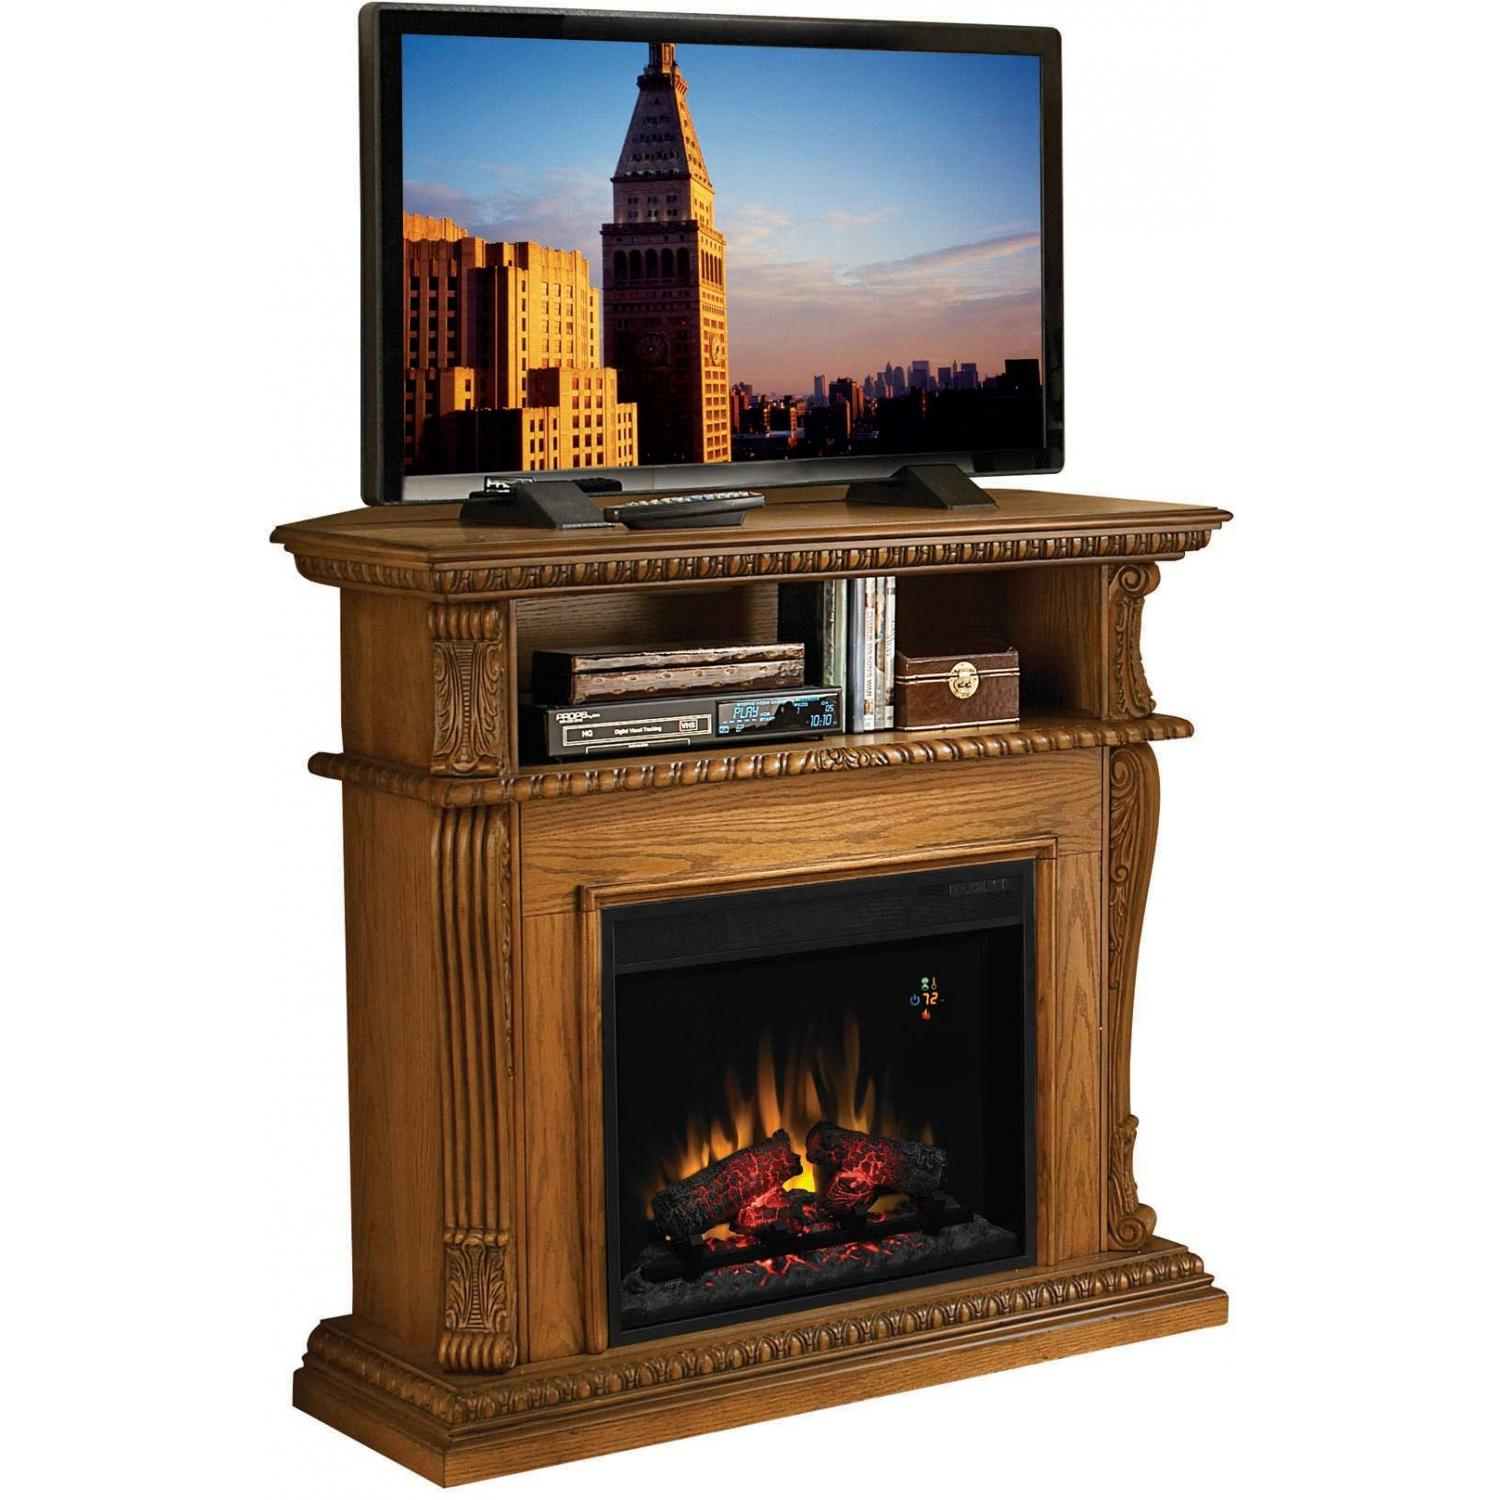 ClassicFlame 23DE1447-O107 Advantage Corinth Dual Use Electric Fireplace - Premium Oak